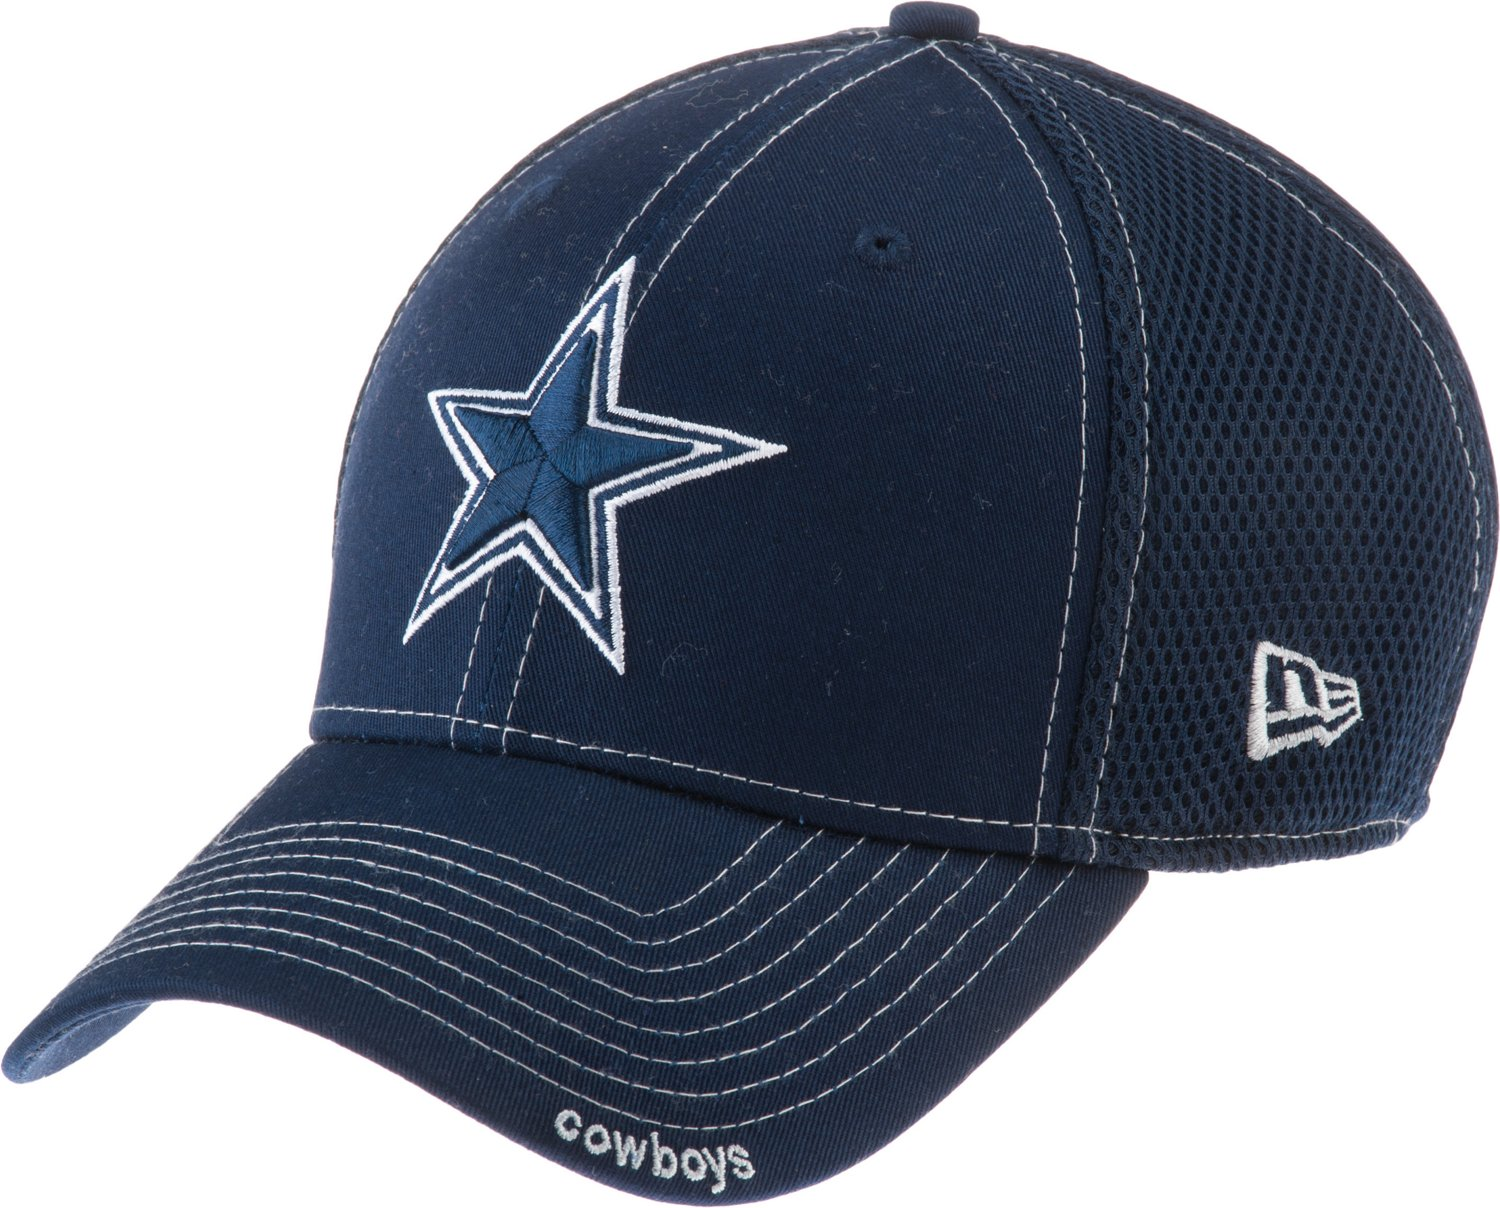 2c64fe7ebeaed Display product reviews for New Era Men s Dallas Cowboys 39Thirty Team Neo  Cap